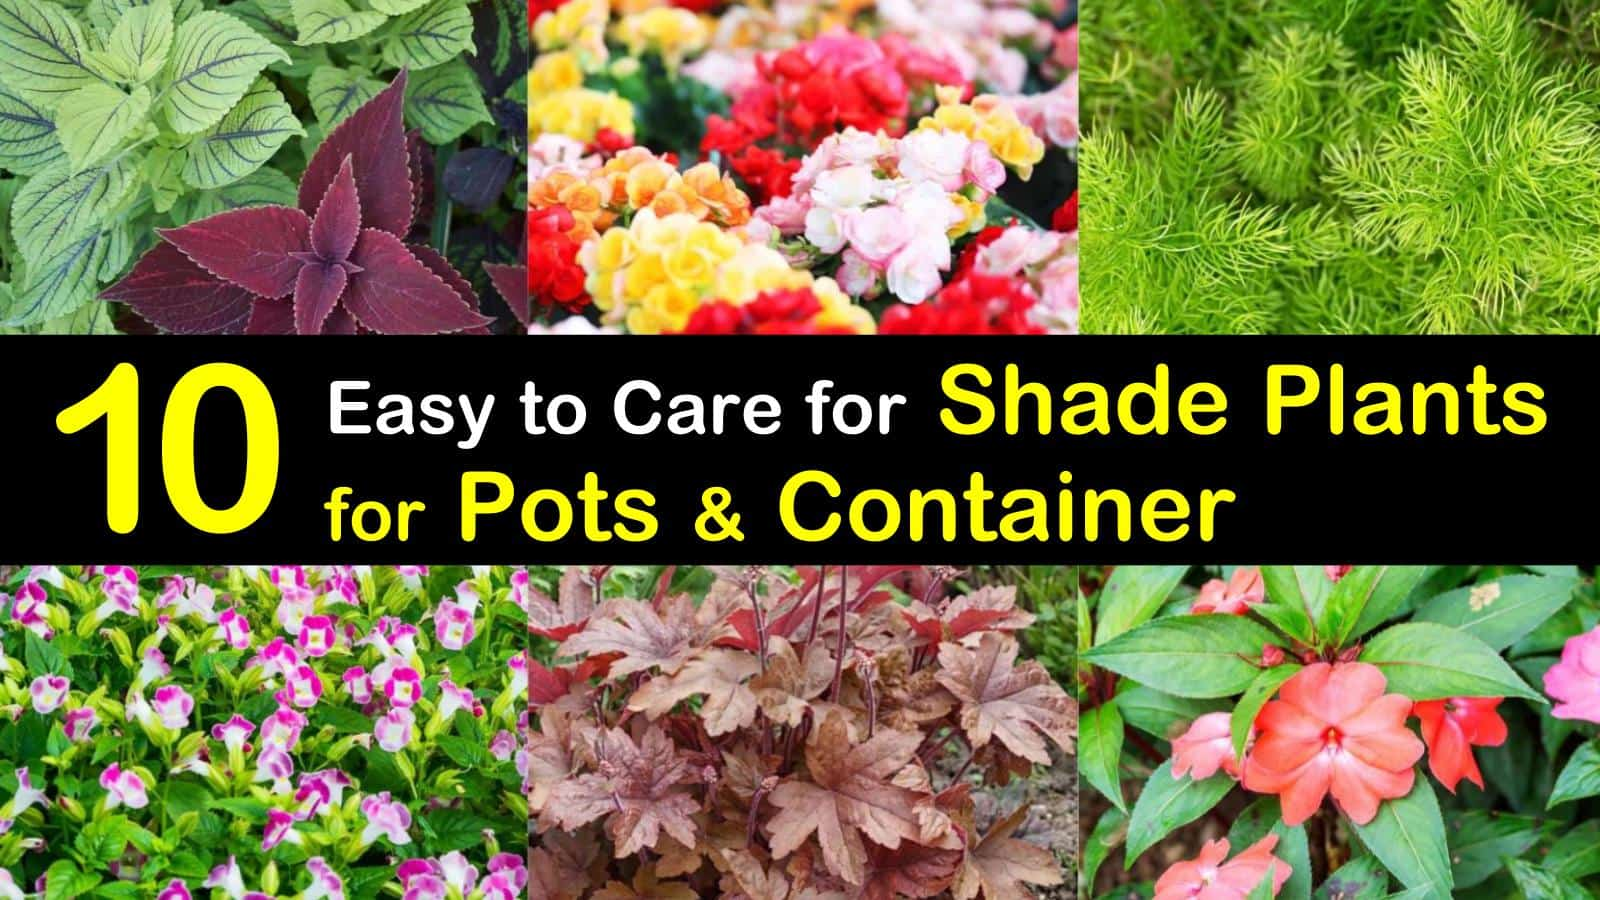 shade plants for pots titleimg1